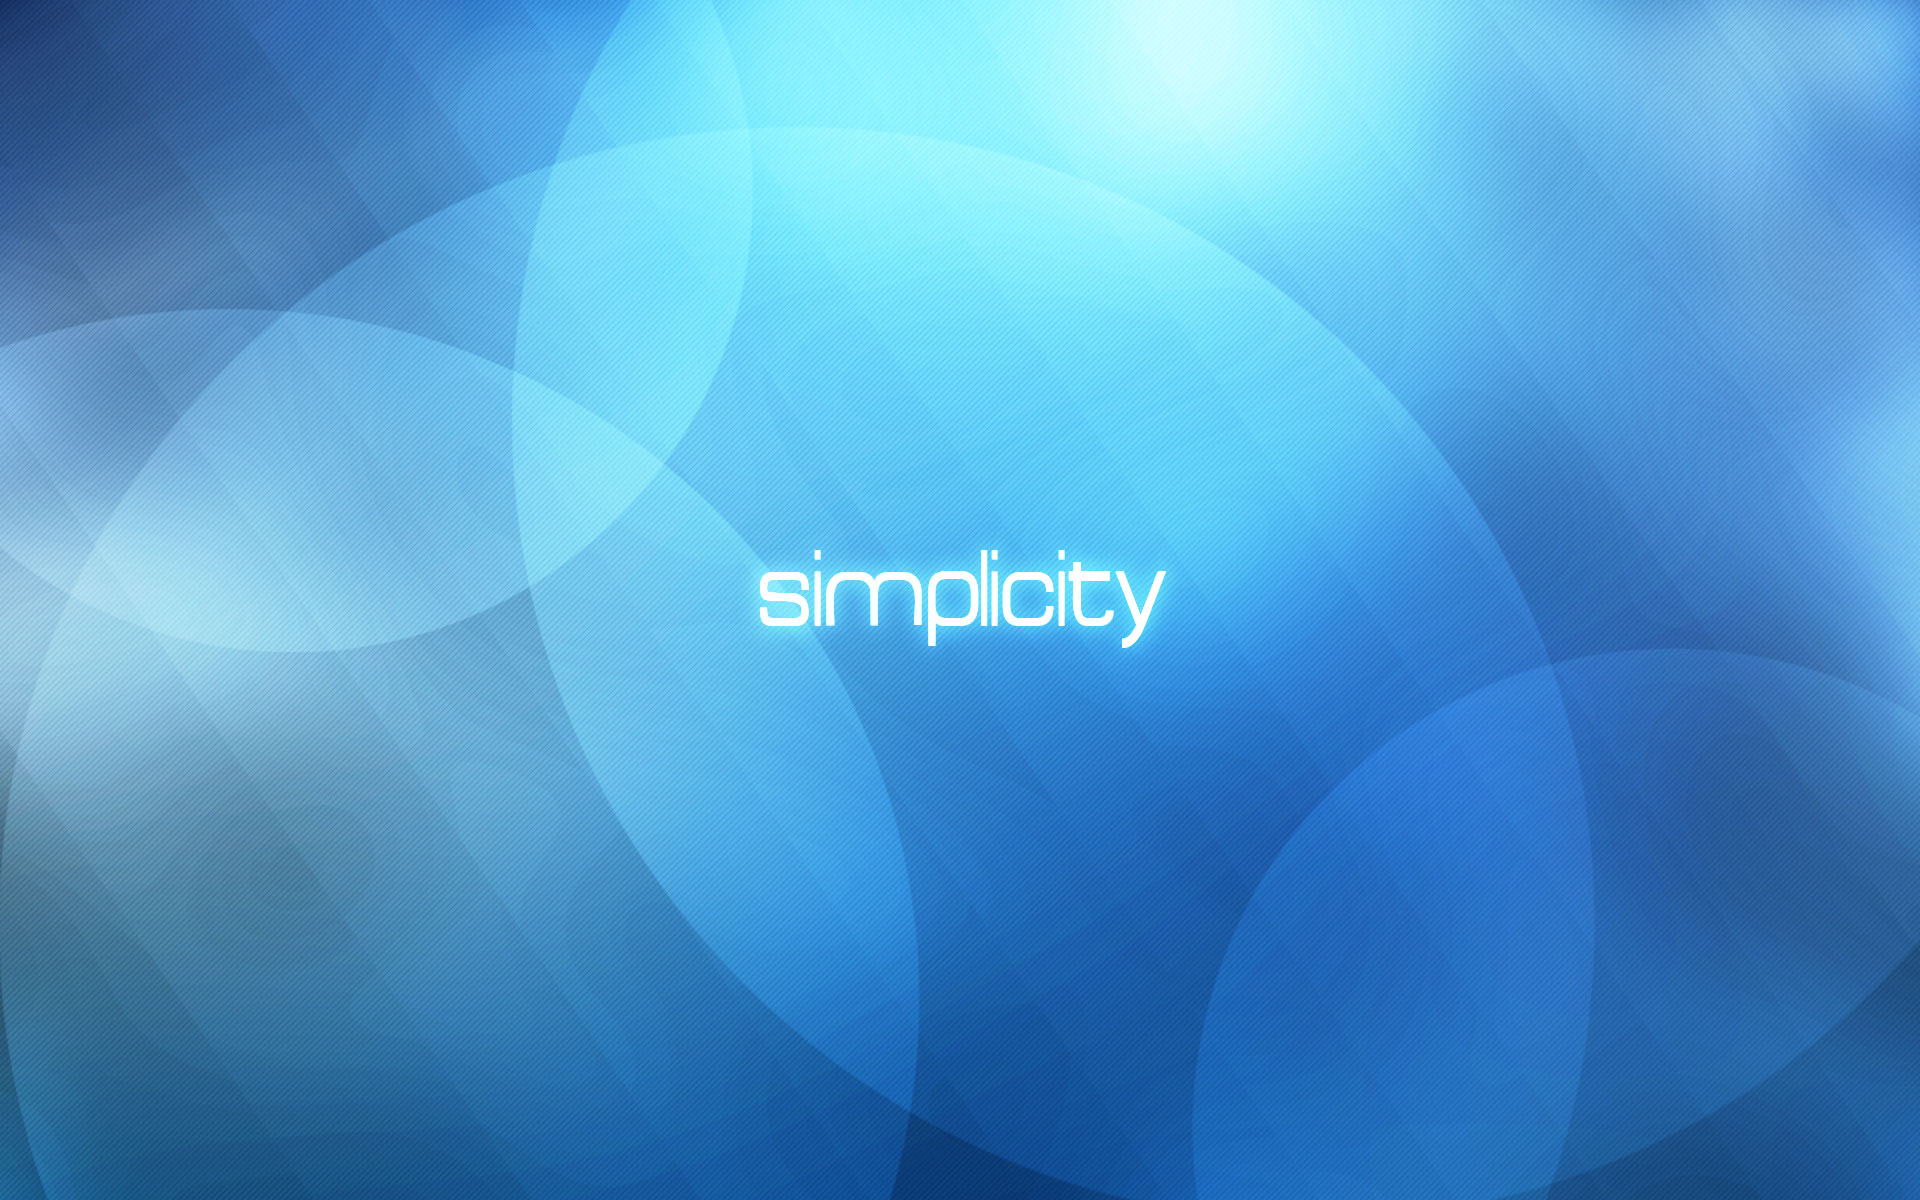 Simplicity Wallpaper 1920x1200 by Seph-the-Zeth on DeviantArt Simplicity Wallpaper